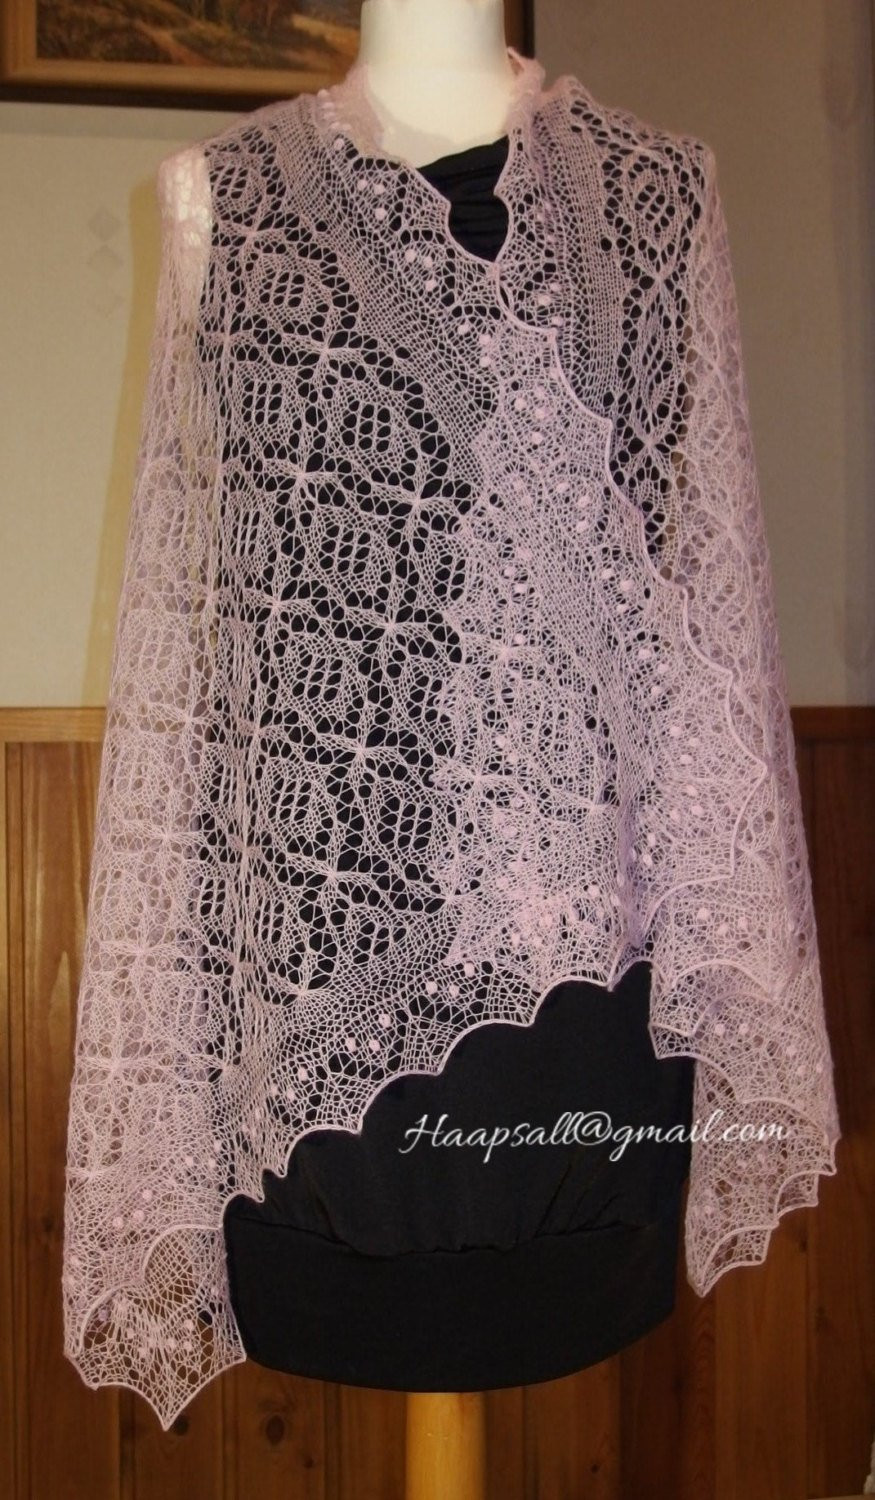 Lovely Hand Knitted Wedding Shawl Estonian Lace Haapsalu Shawl the Knitted Wedding Shawl Of Awesome Wedding and Bridal Knitting Patterns Knitted Wedding Shawl